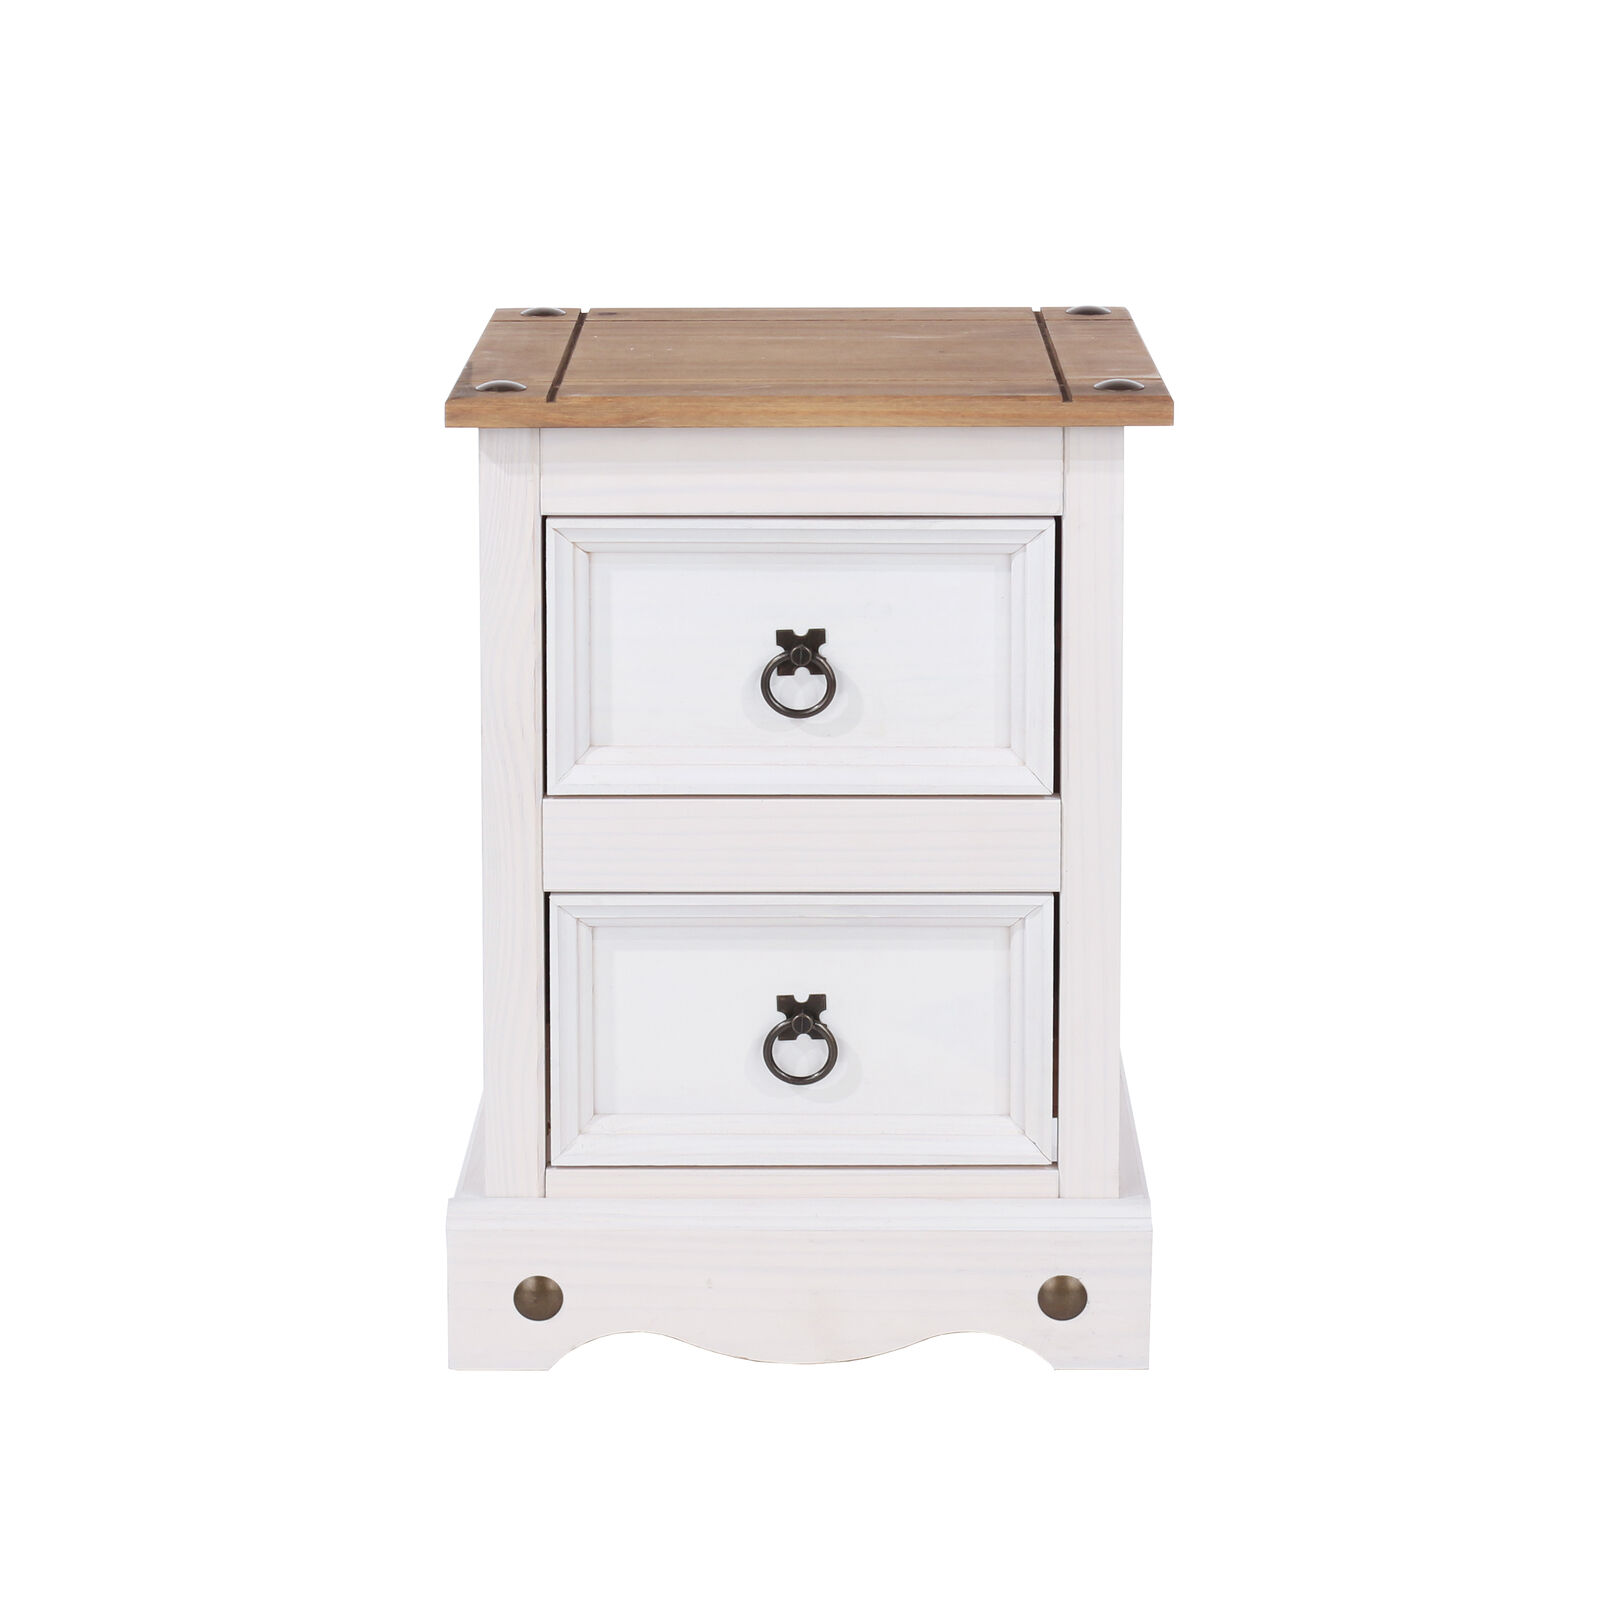 Picture of: Corona White 2x 2 Drawer Bedside Cabinet Tables Solid Wood Washed Pine Top Ebay